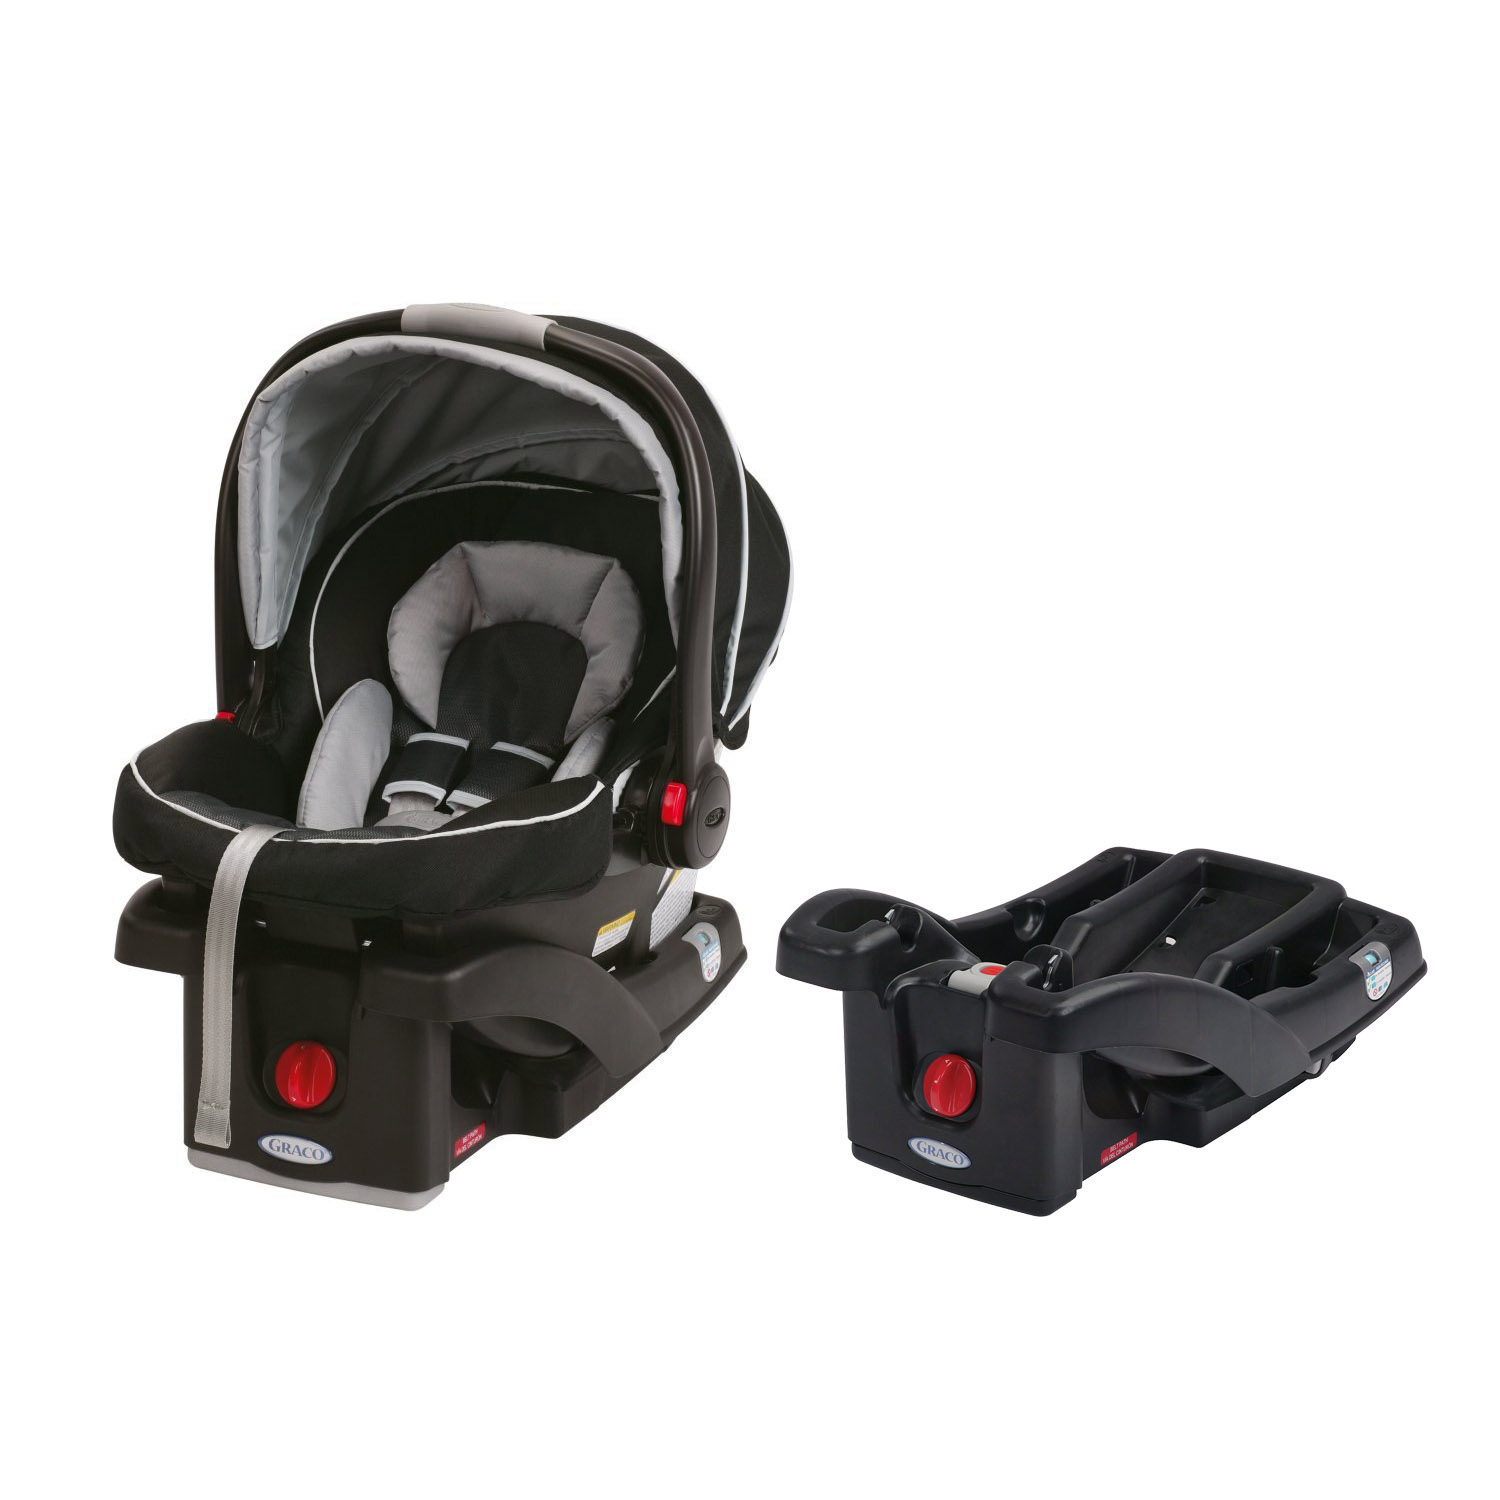 Graco SnugRide Click Connect 35 Baby Infant Car Seat, Got...